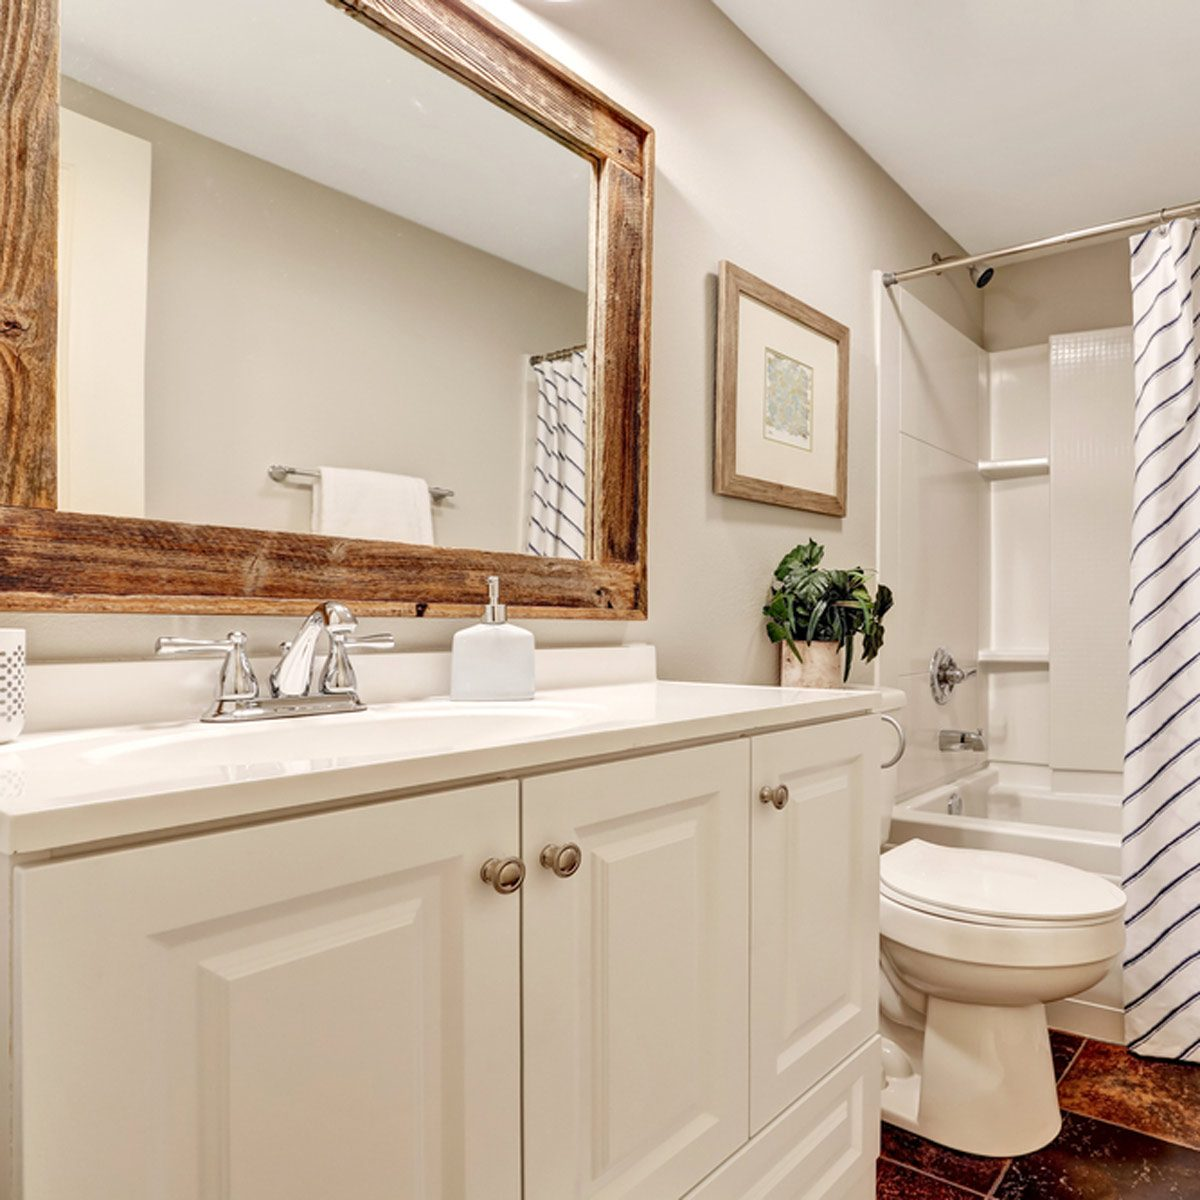 10 Ways to Save Money During Your Bathroom Renovation | The Family ...